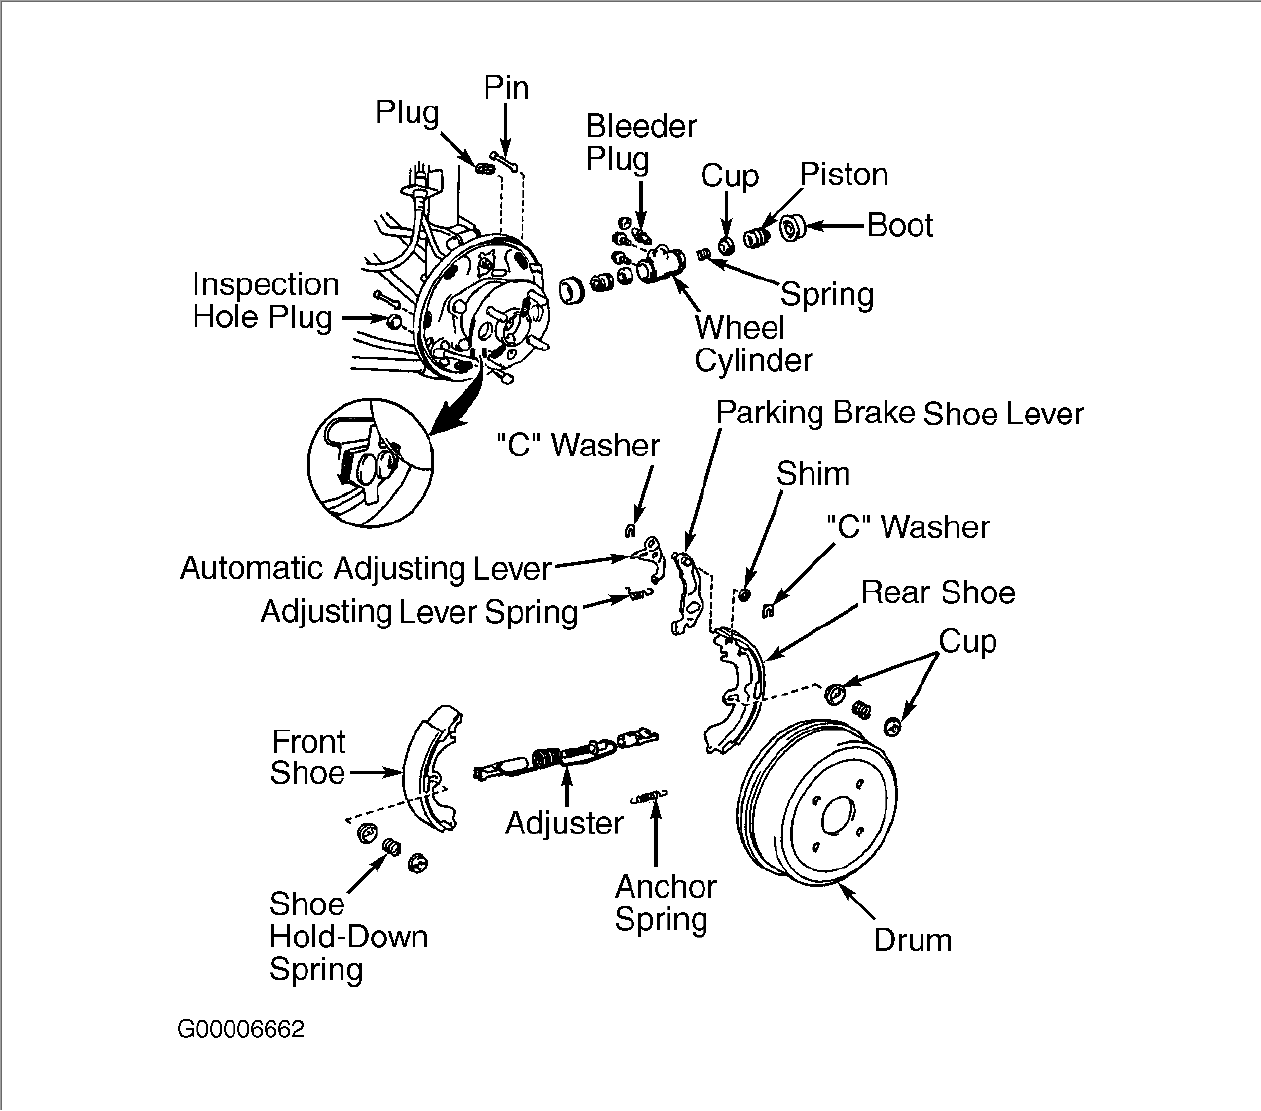 How Do You Change Rear Drum Brakes On A 2002 Toyota Celica 2003 Engine Diagram Graphic